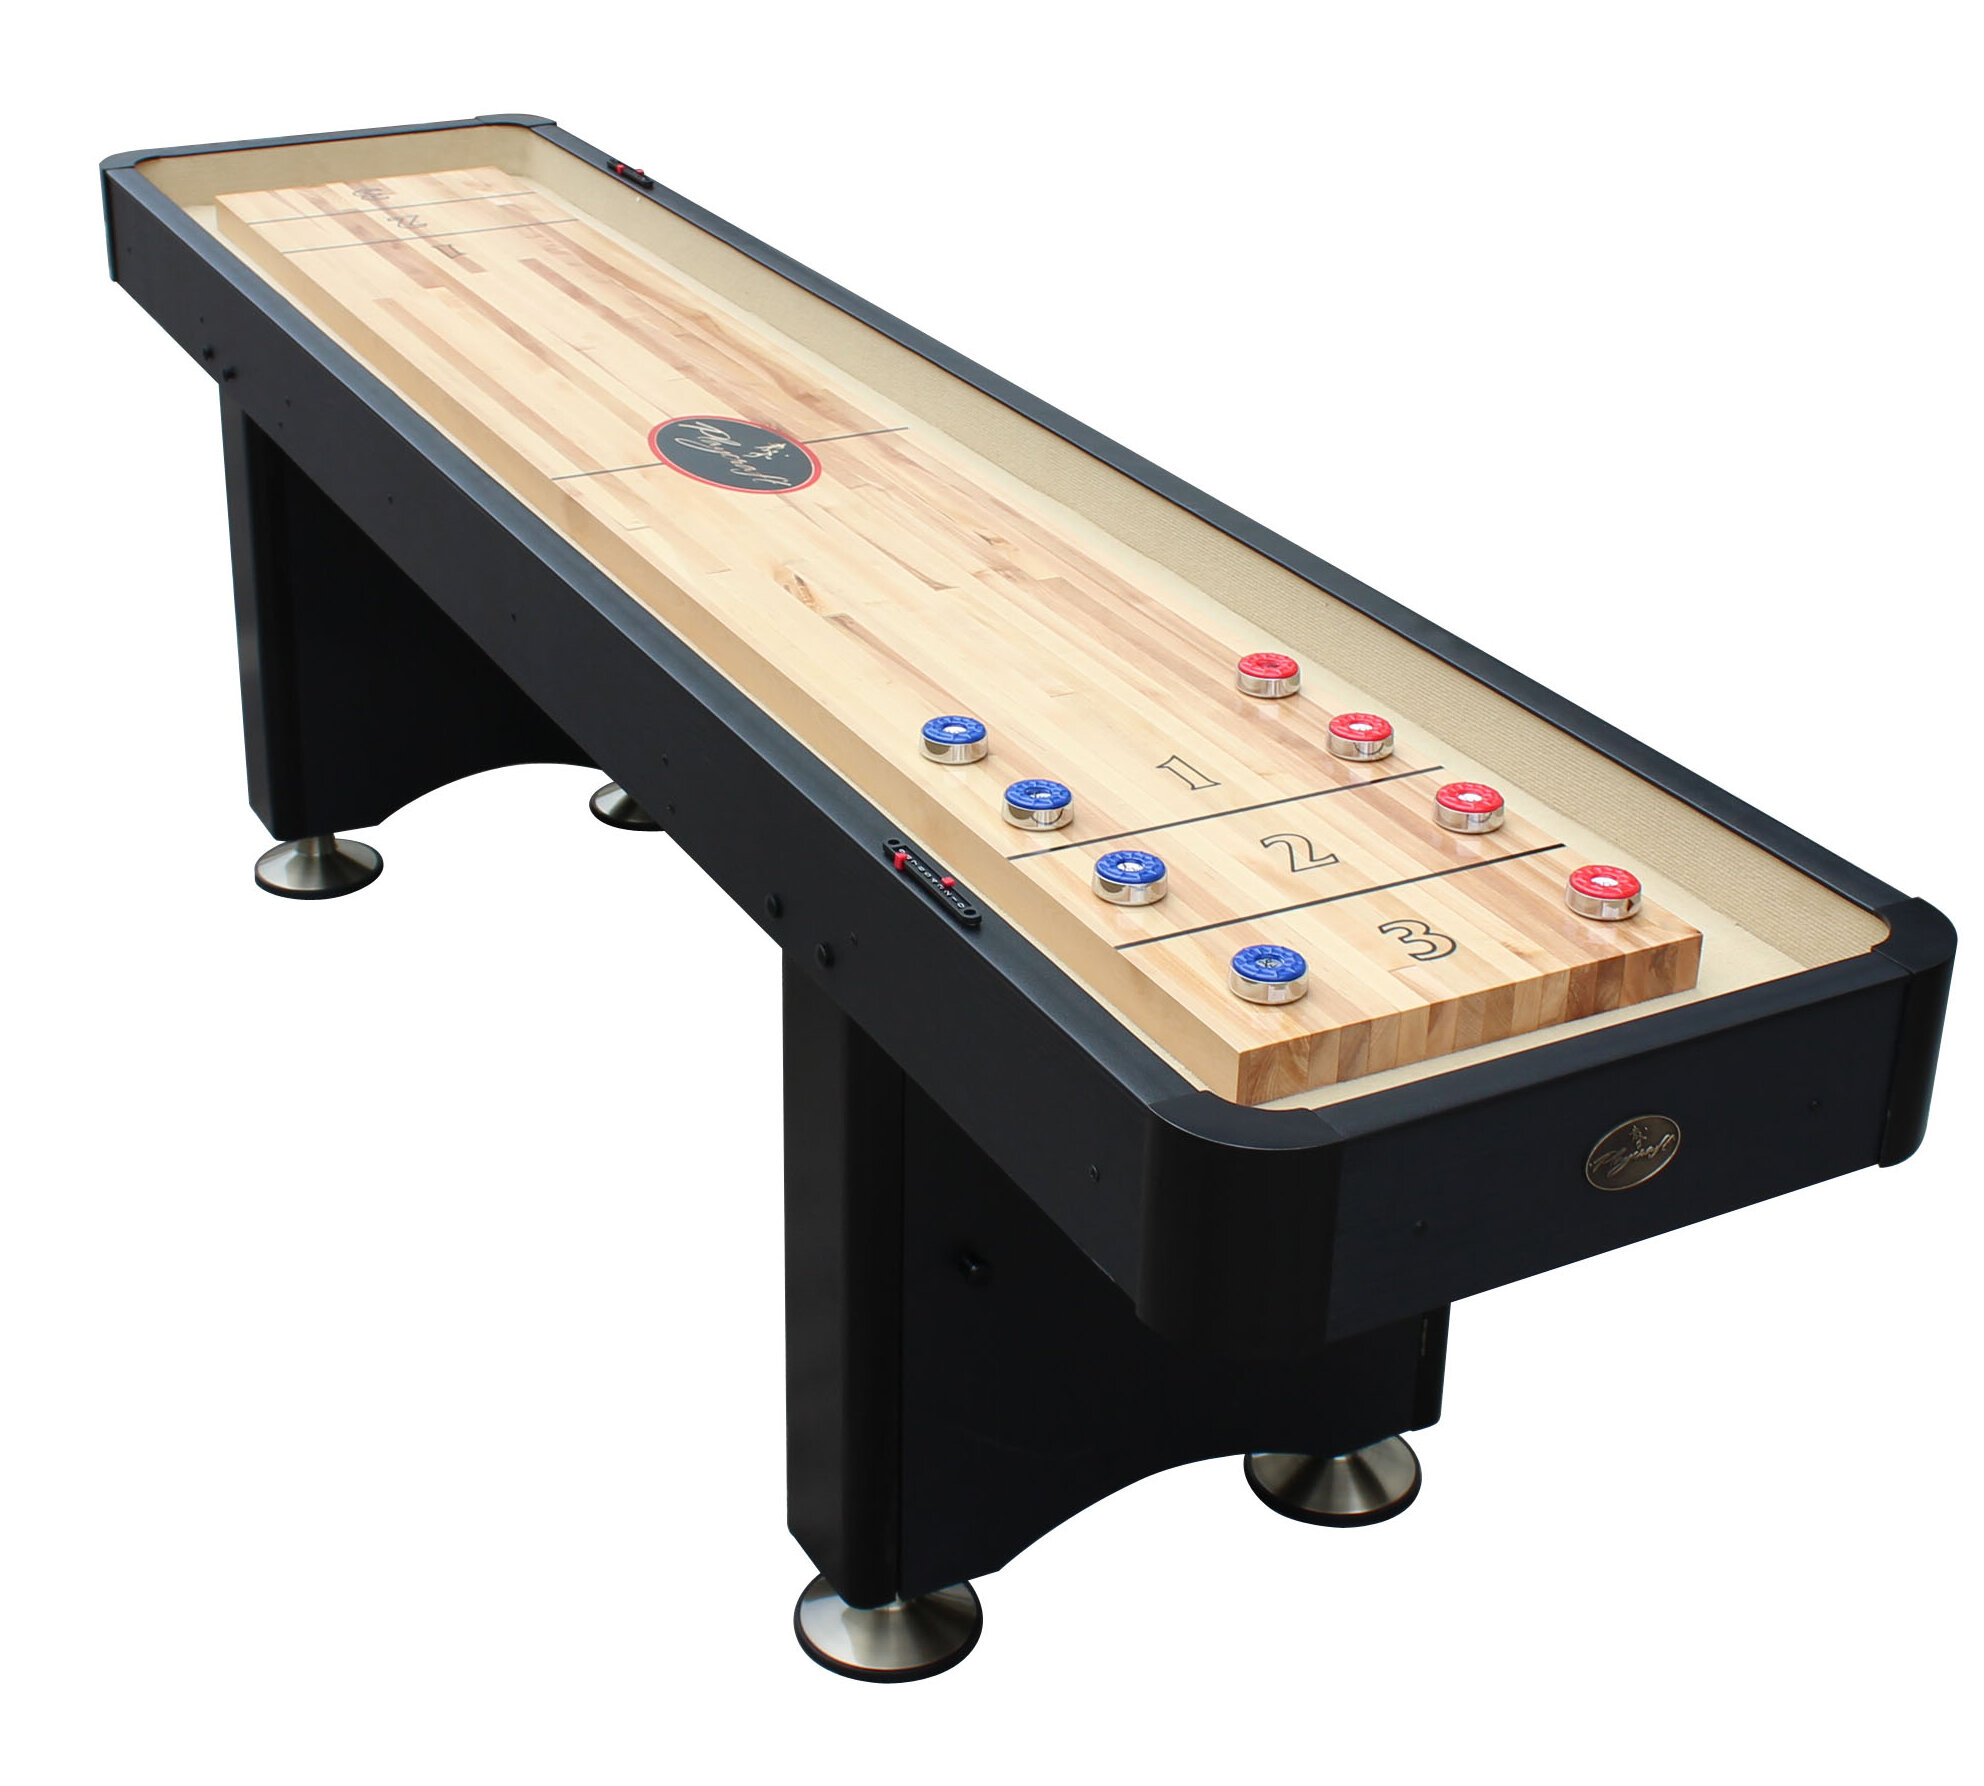 usa pin sale stock with shipment and in table tables shuffleboard for the handcrafted locally michigander mcclure made